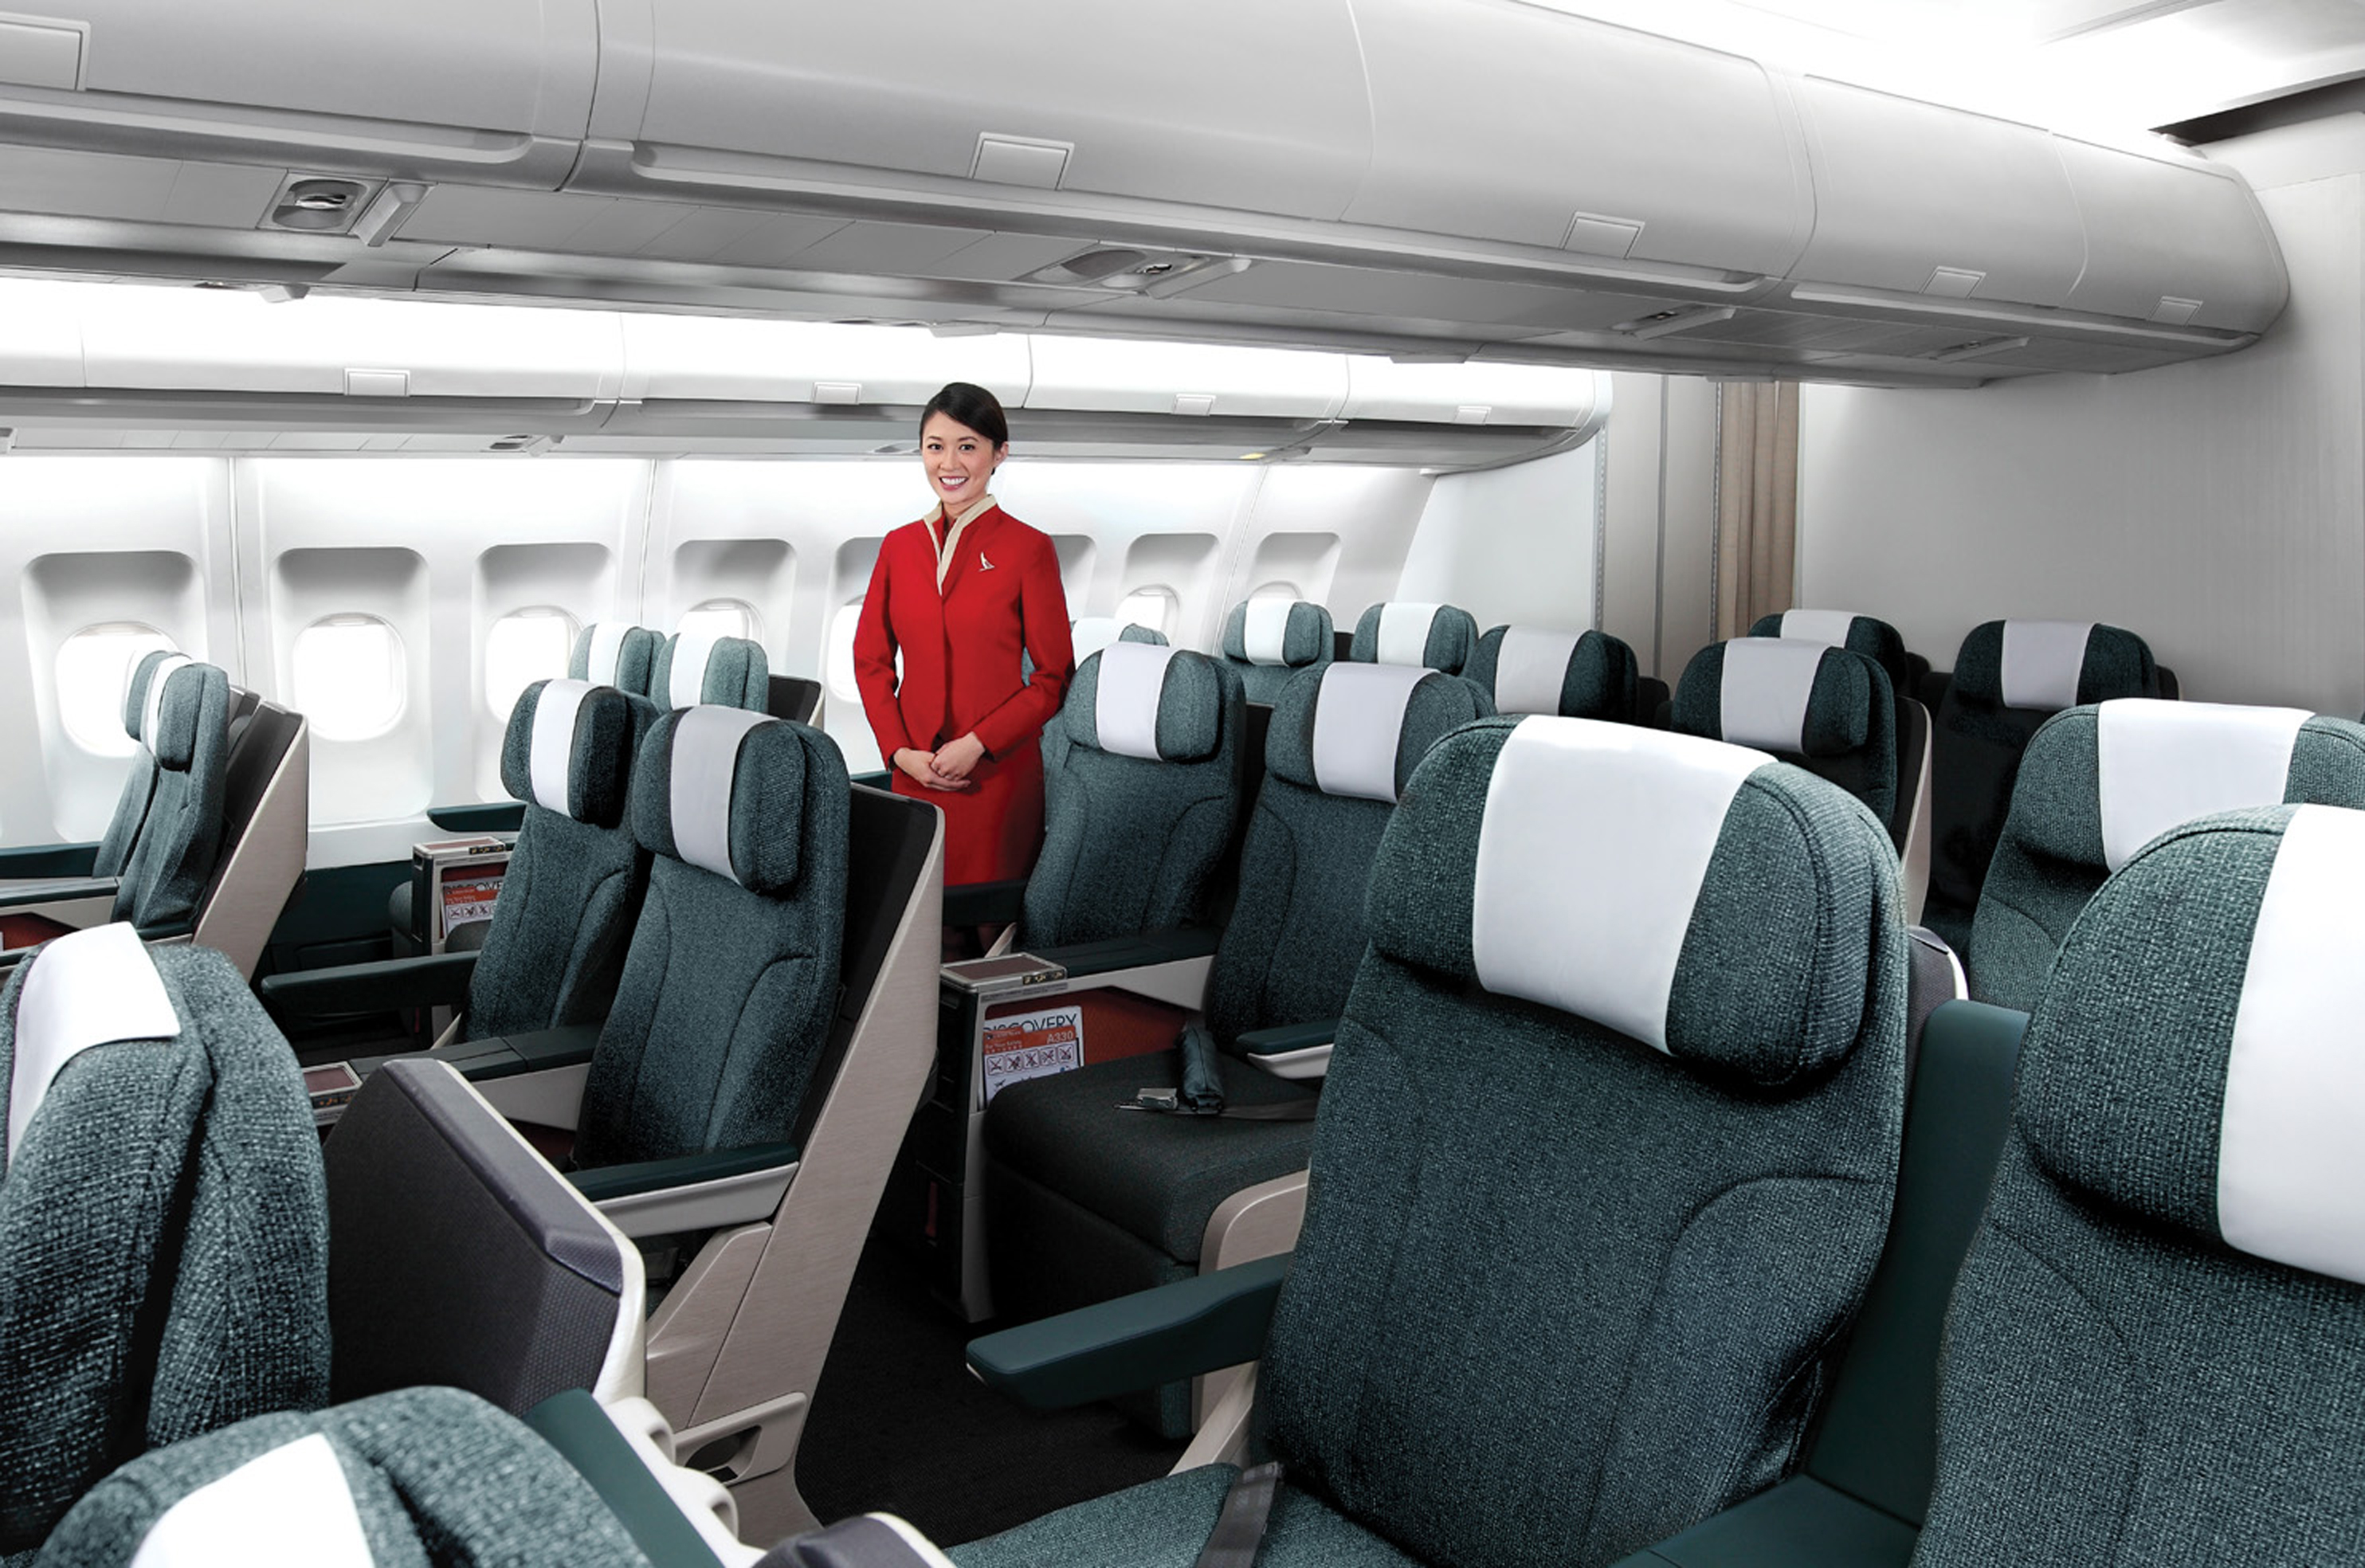 cathay_pacific_unveils_new_regional_business_class_2.jpg